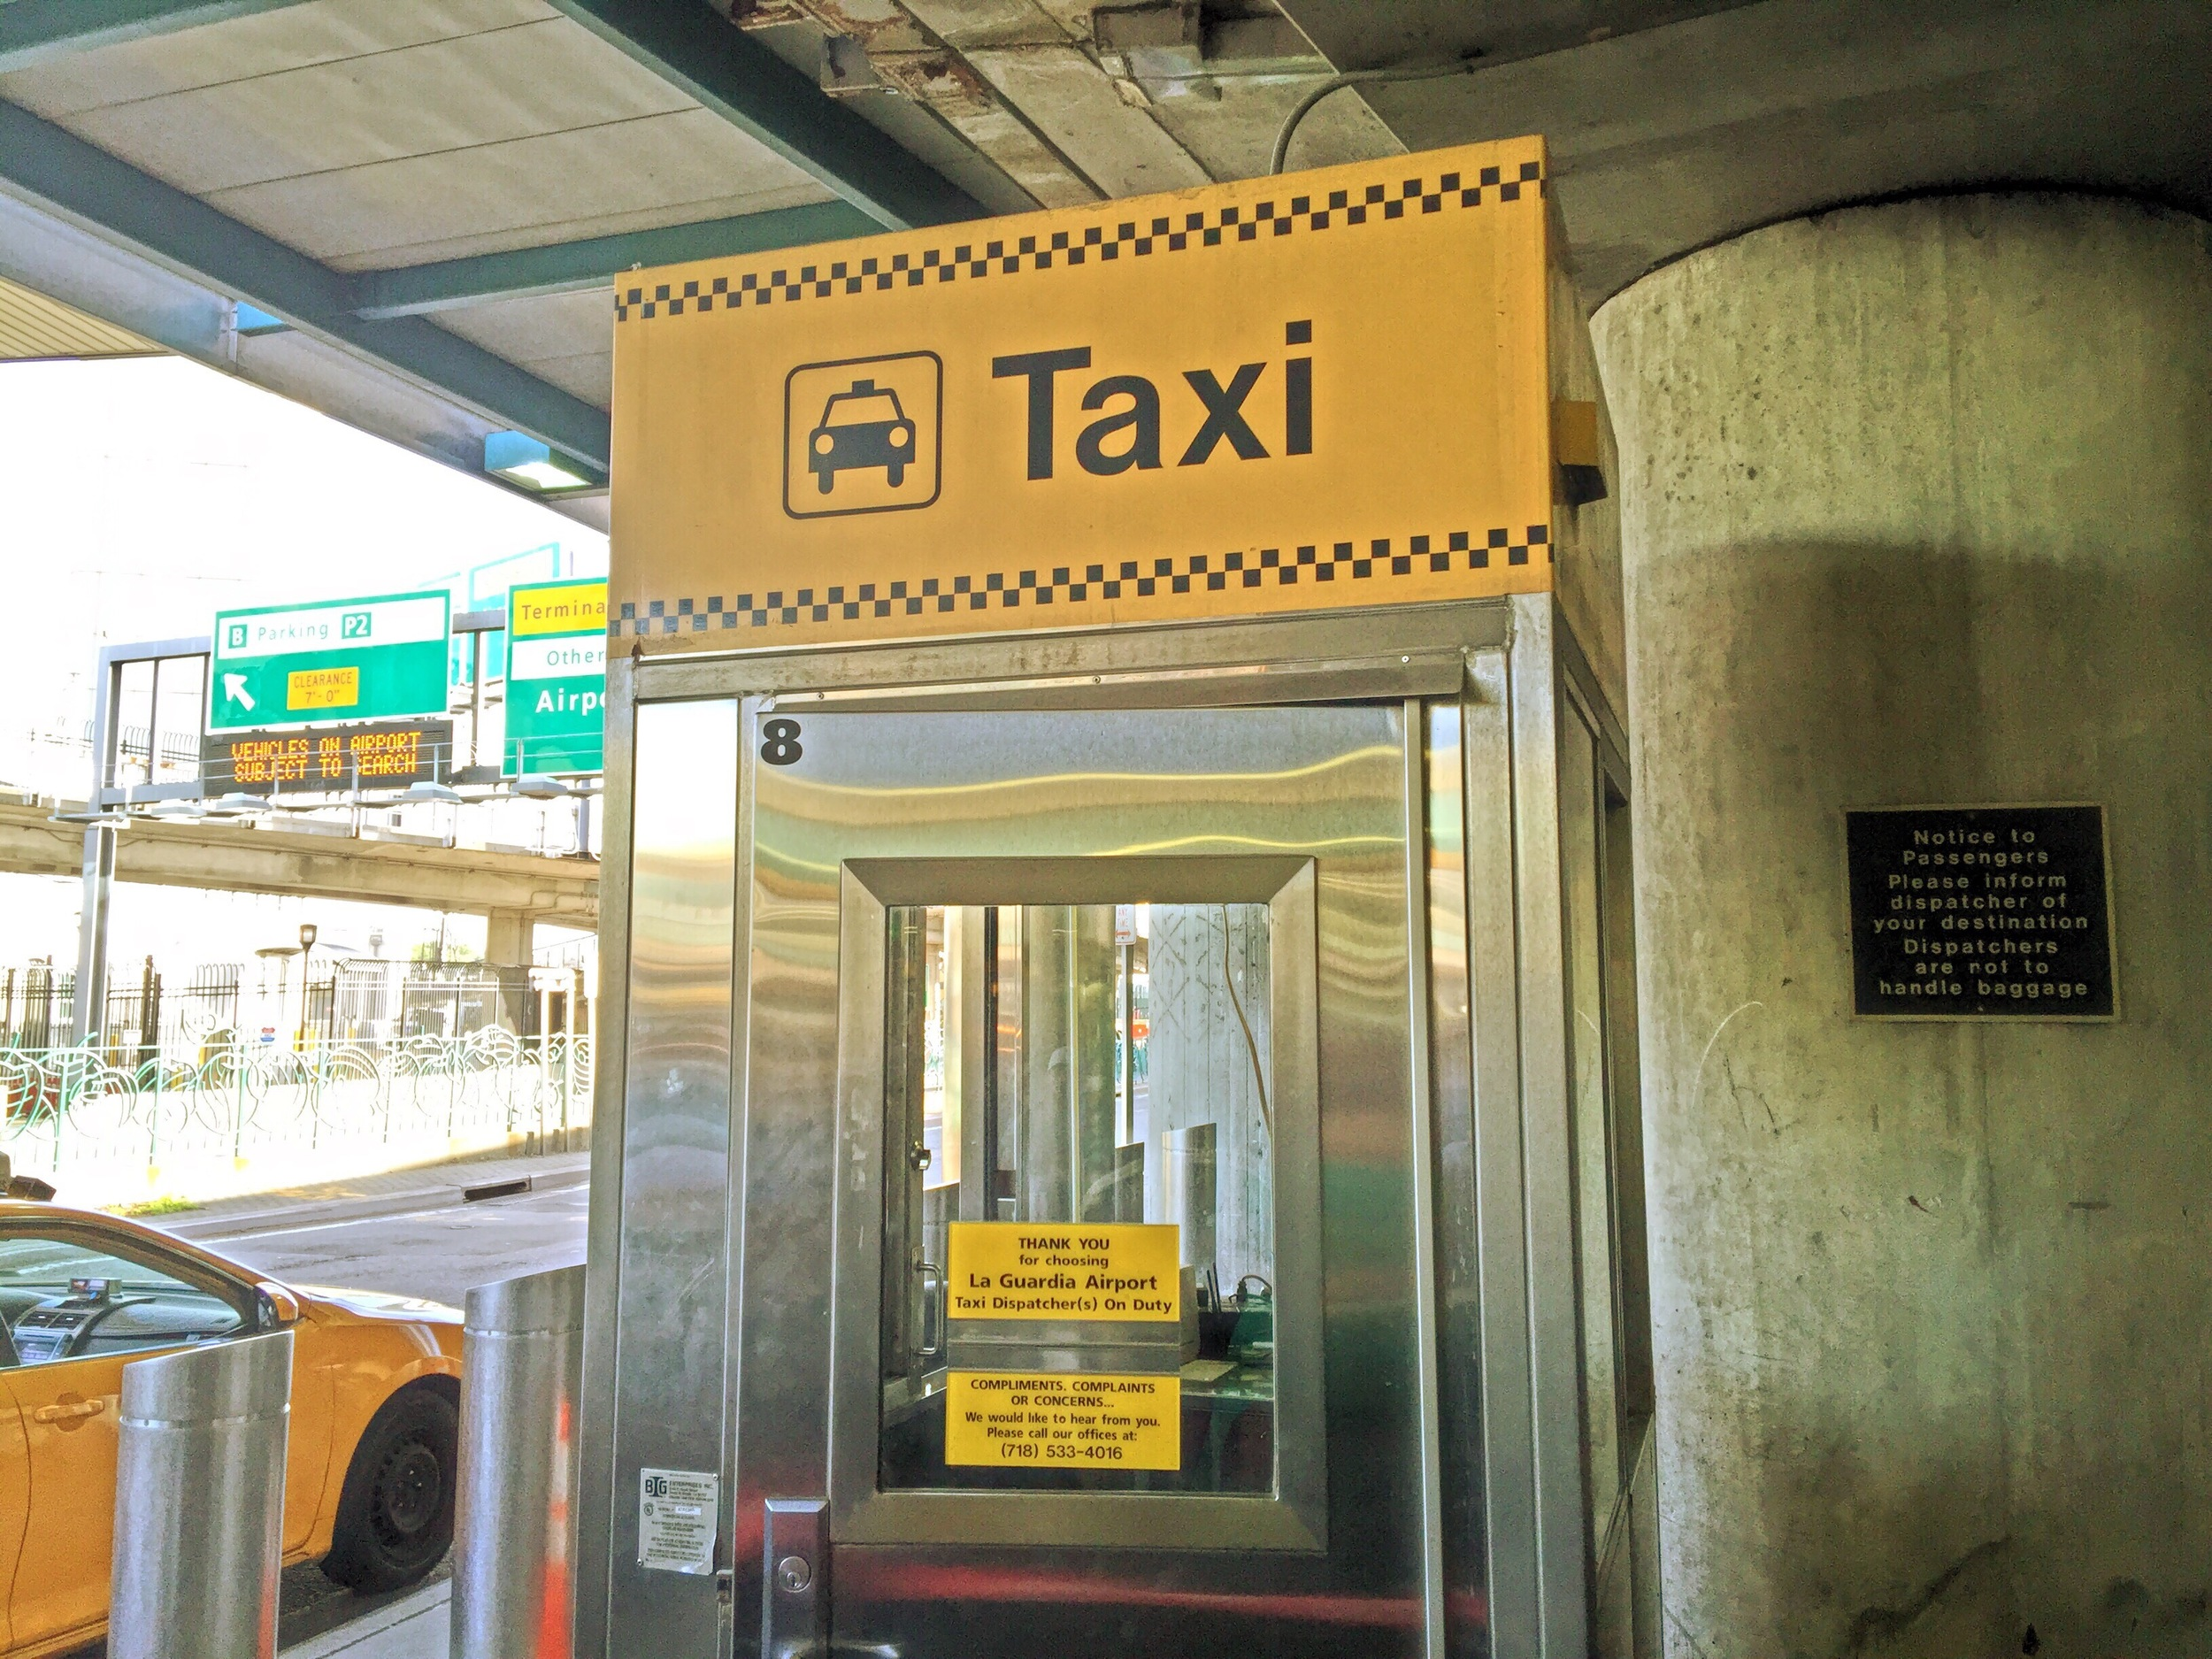 """Only get a taxi at the taxi stand. Avoid """"touts"""" who supposedly offer a taxi, but take you to private car services."""